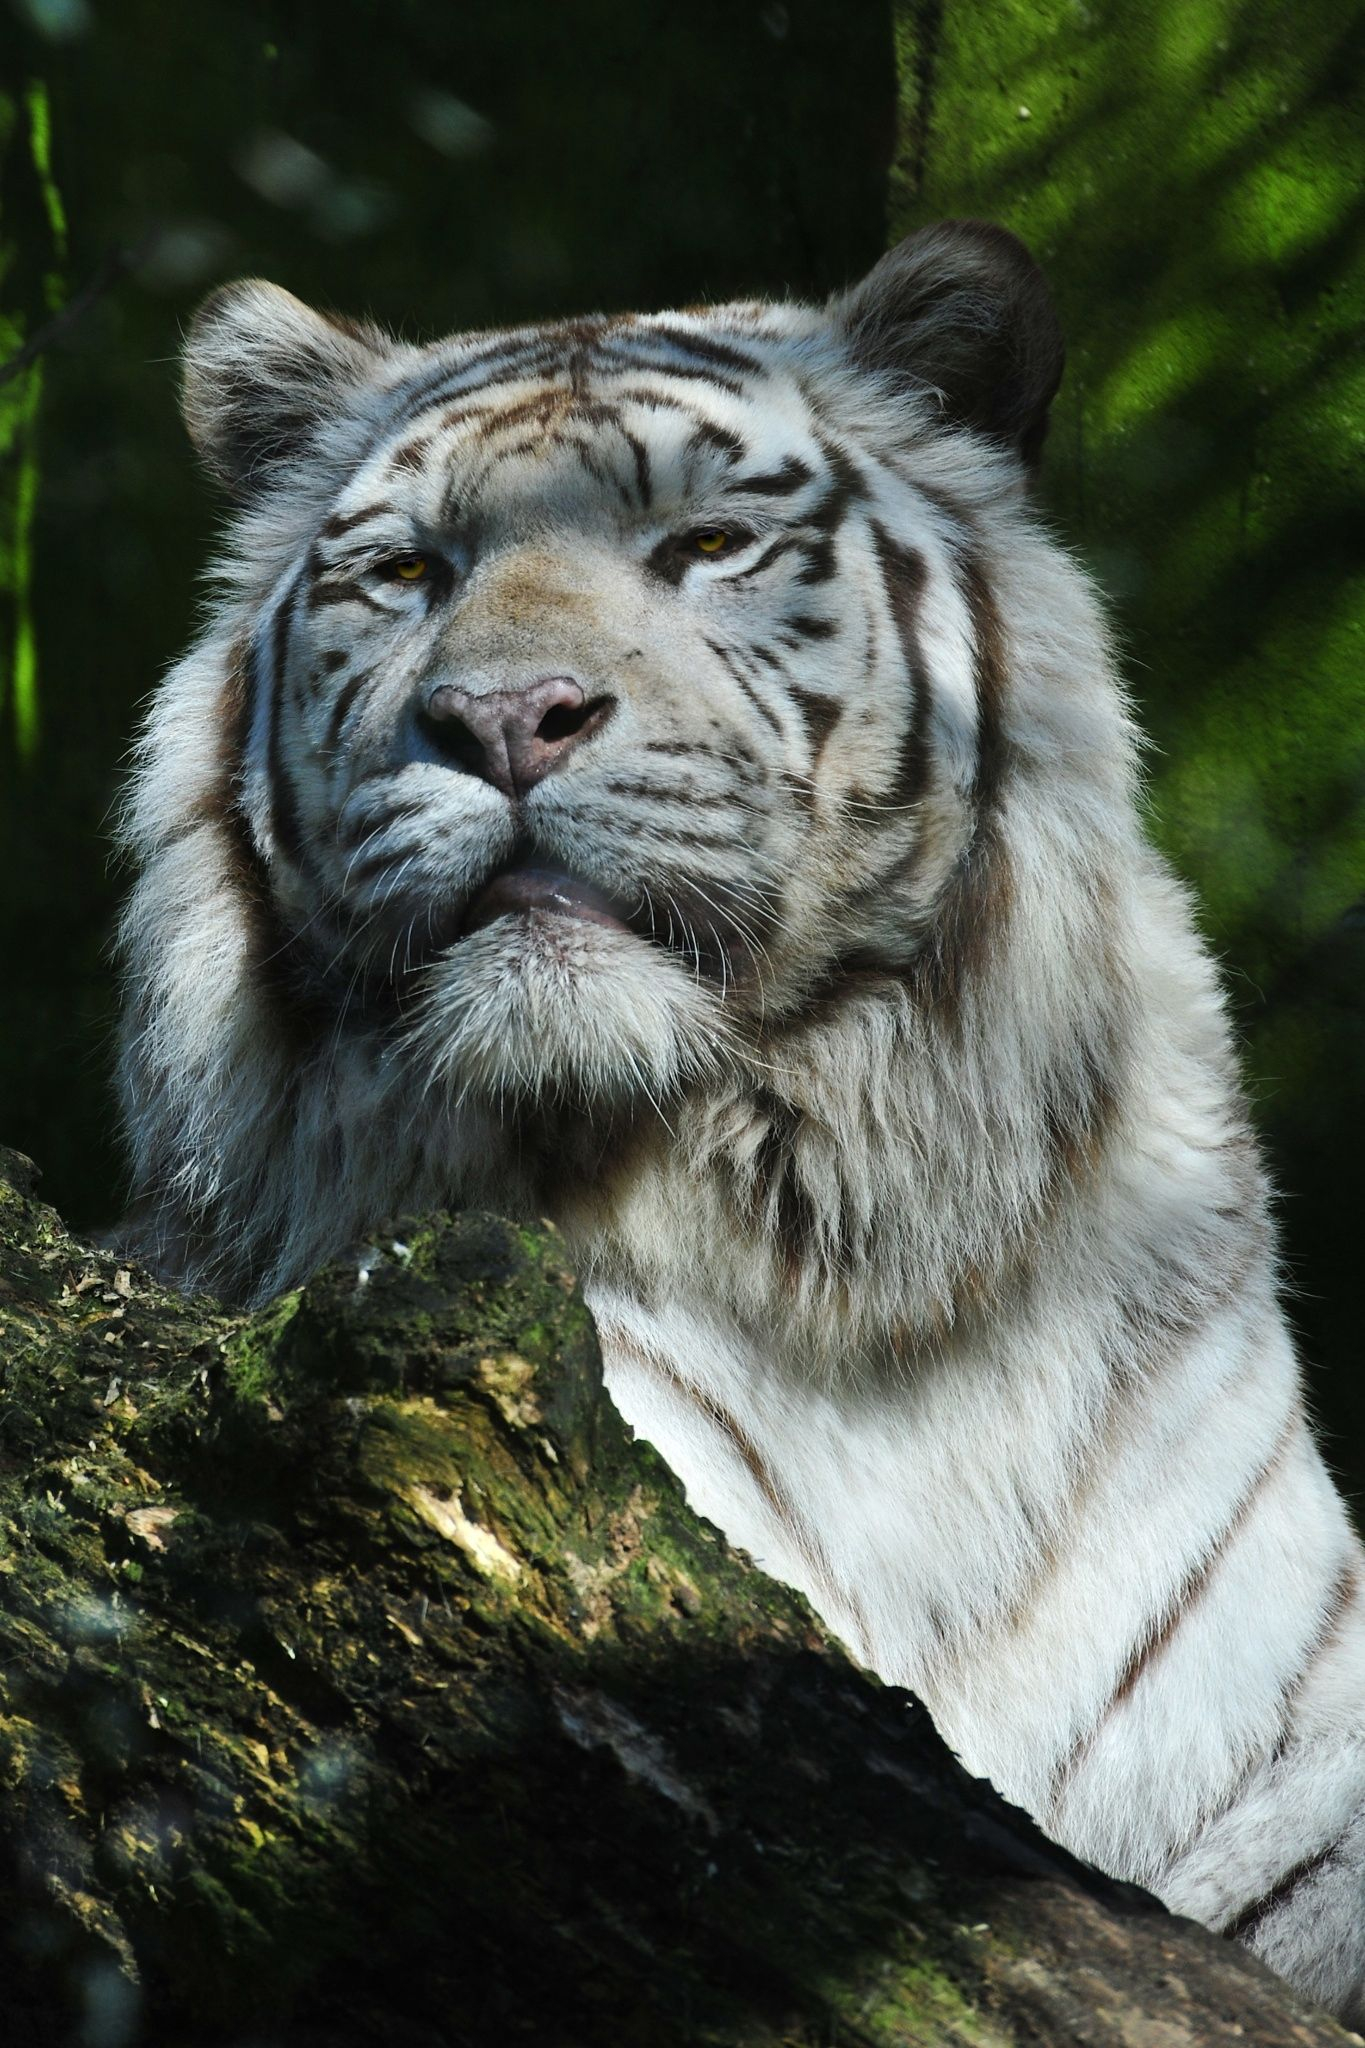 Siberian Tiger - A magnificent proud animal | Lions ...